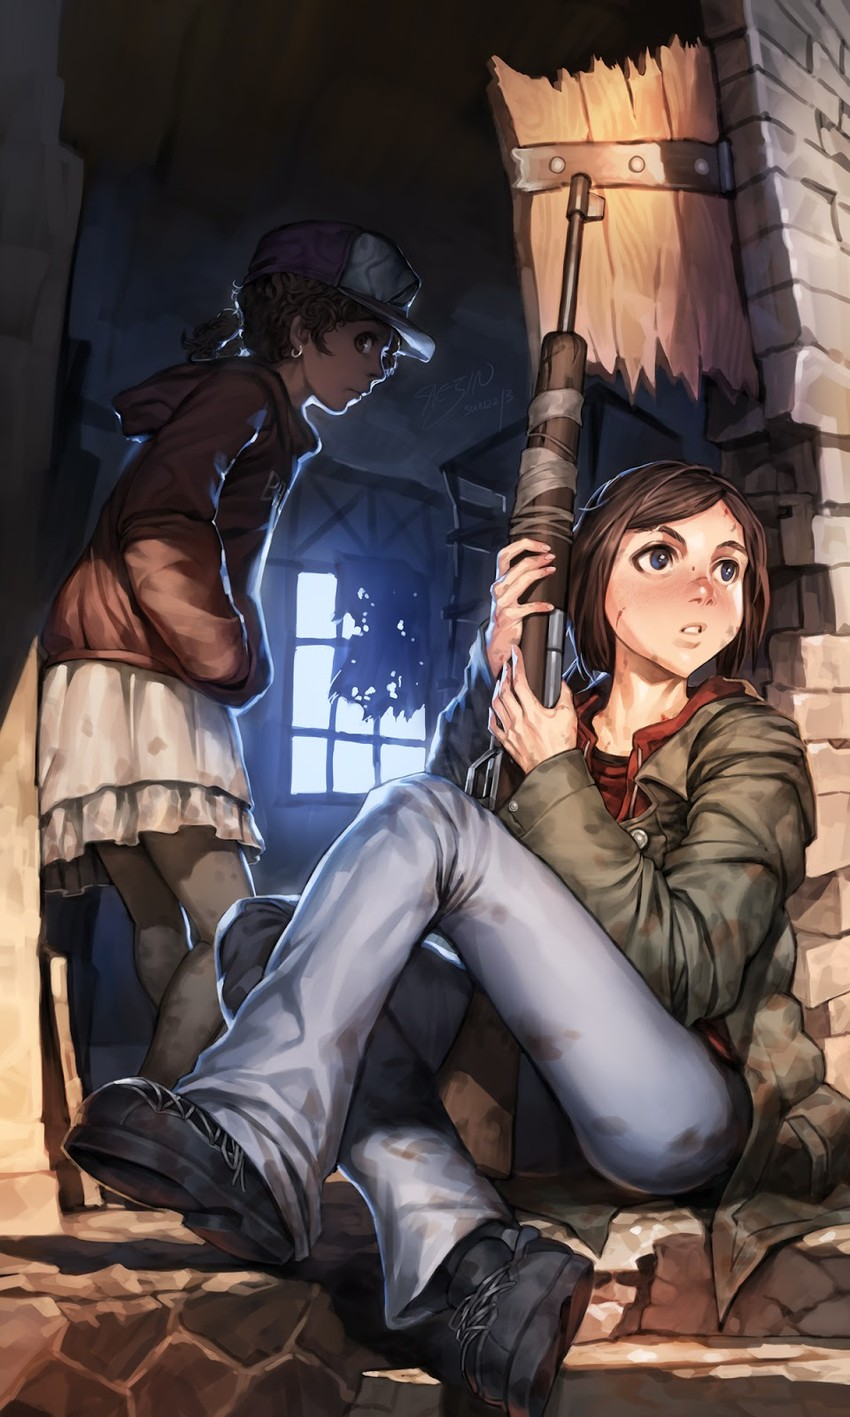 Ellie last of us hentai